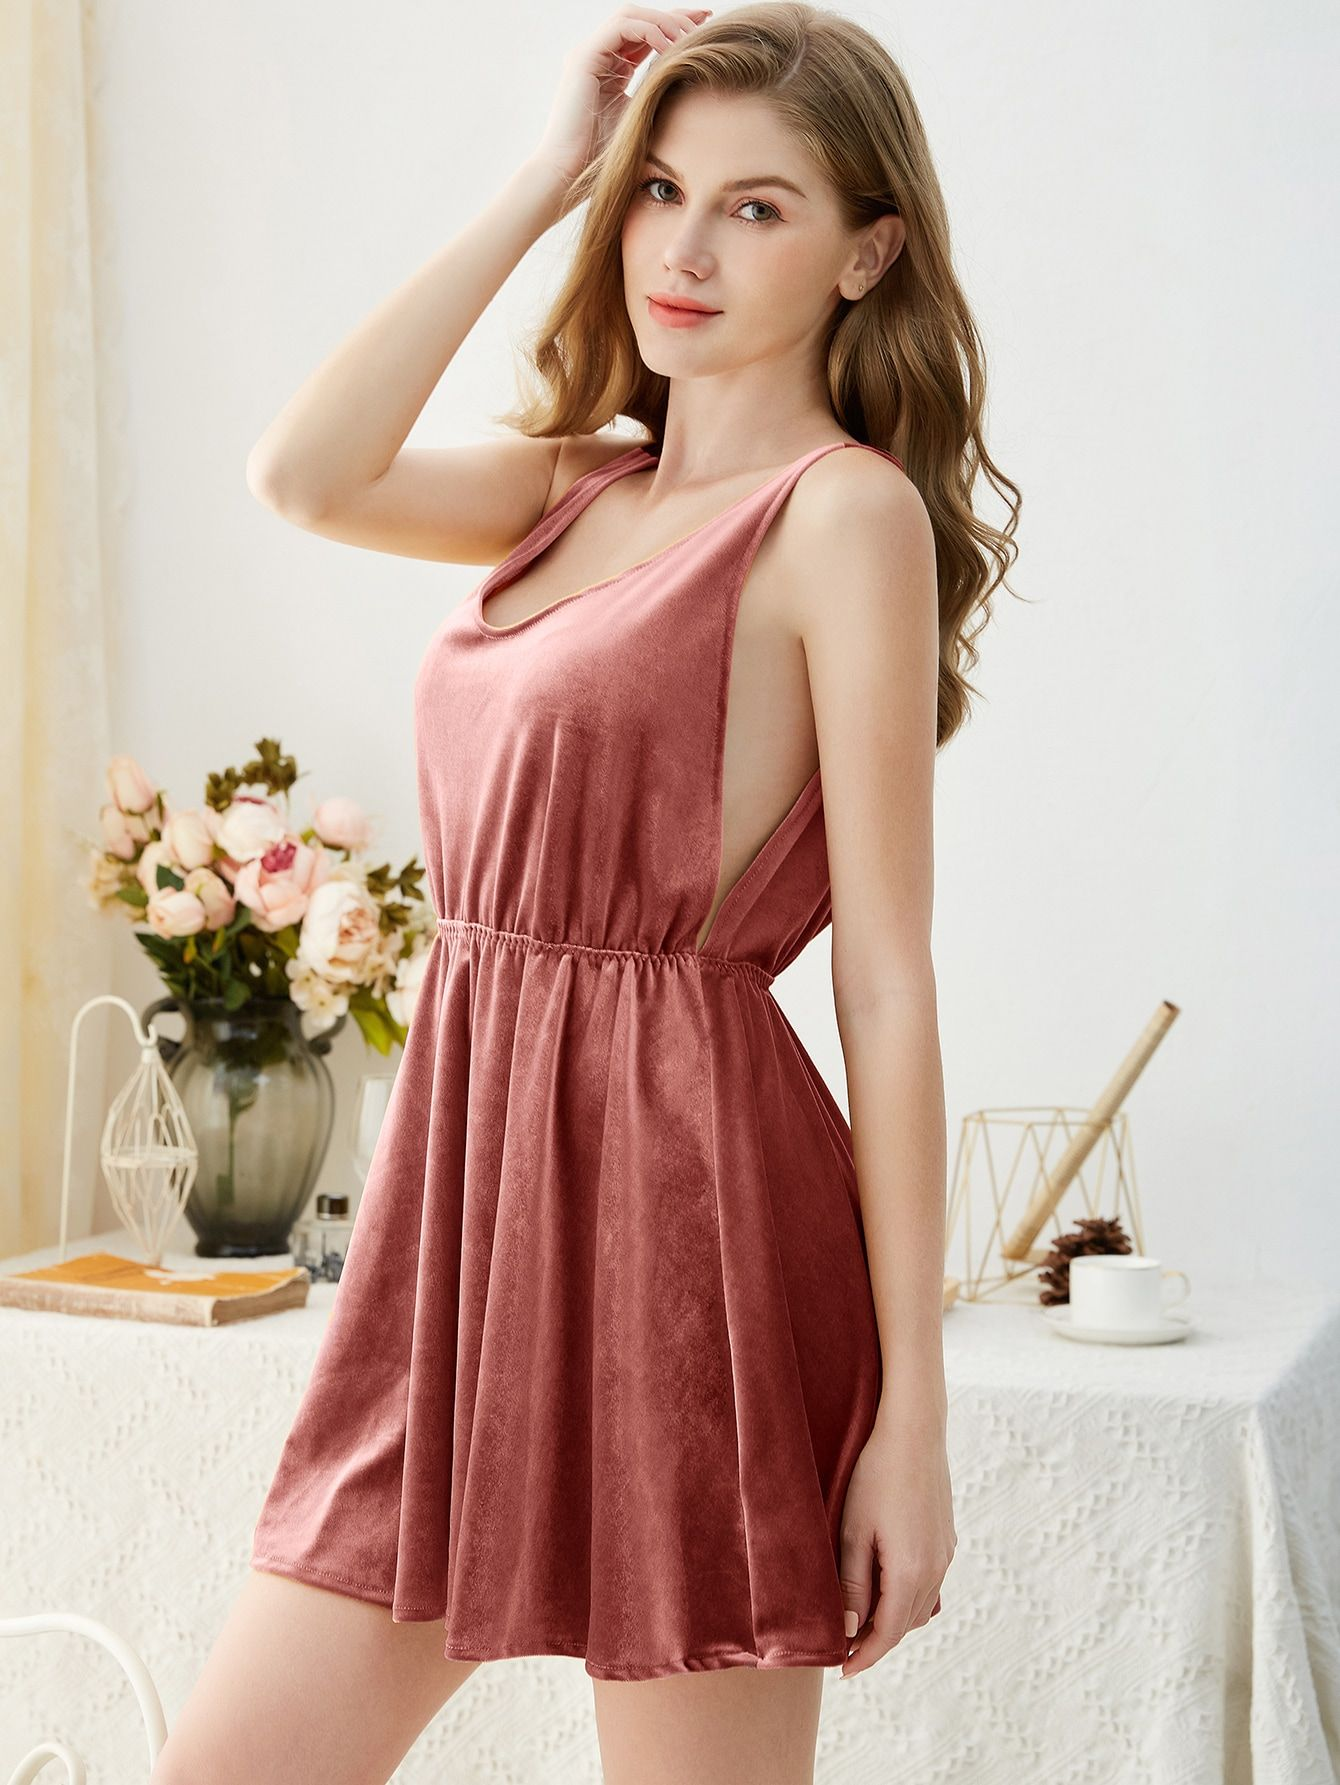 Ad Velvet Night Dress Tags Elegant Pink Plain Scoop Neck Nightgowns Sleeveless 95 Polyester 5 Spandex Velv Night Dress Dresses Ladies Mini Dresses